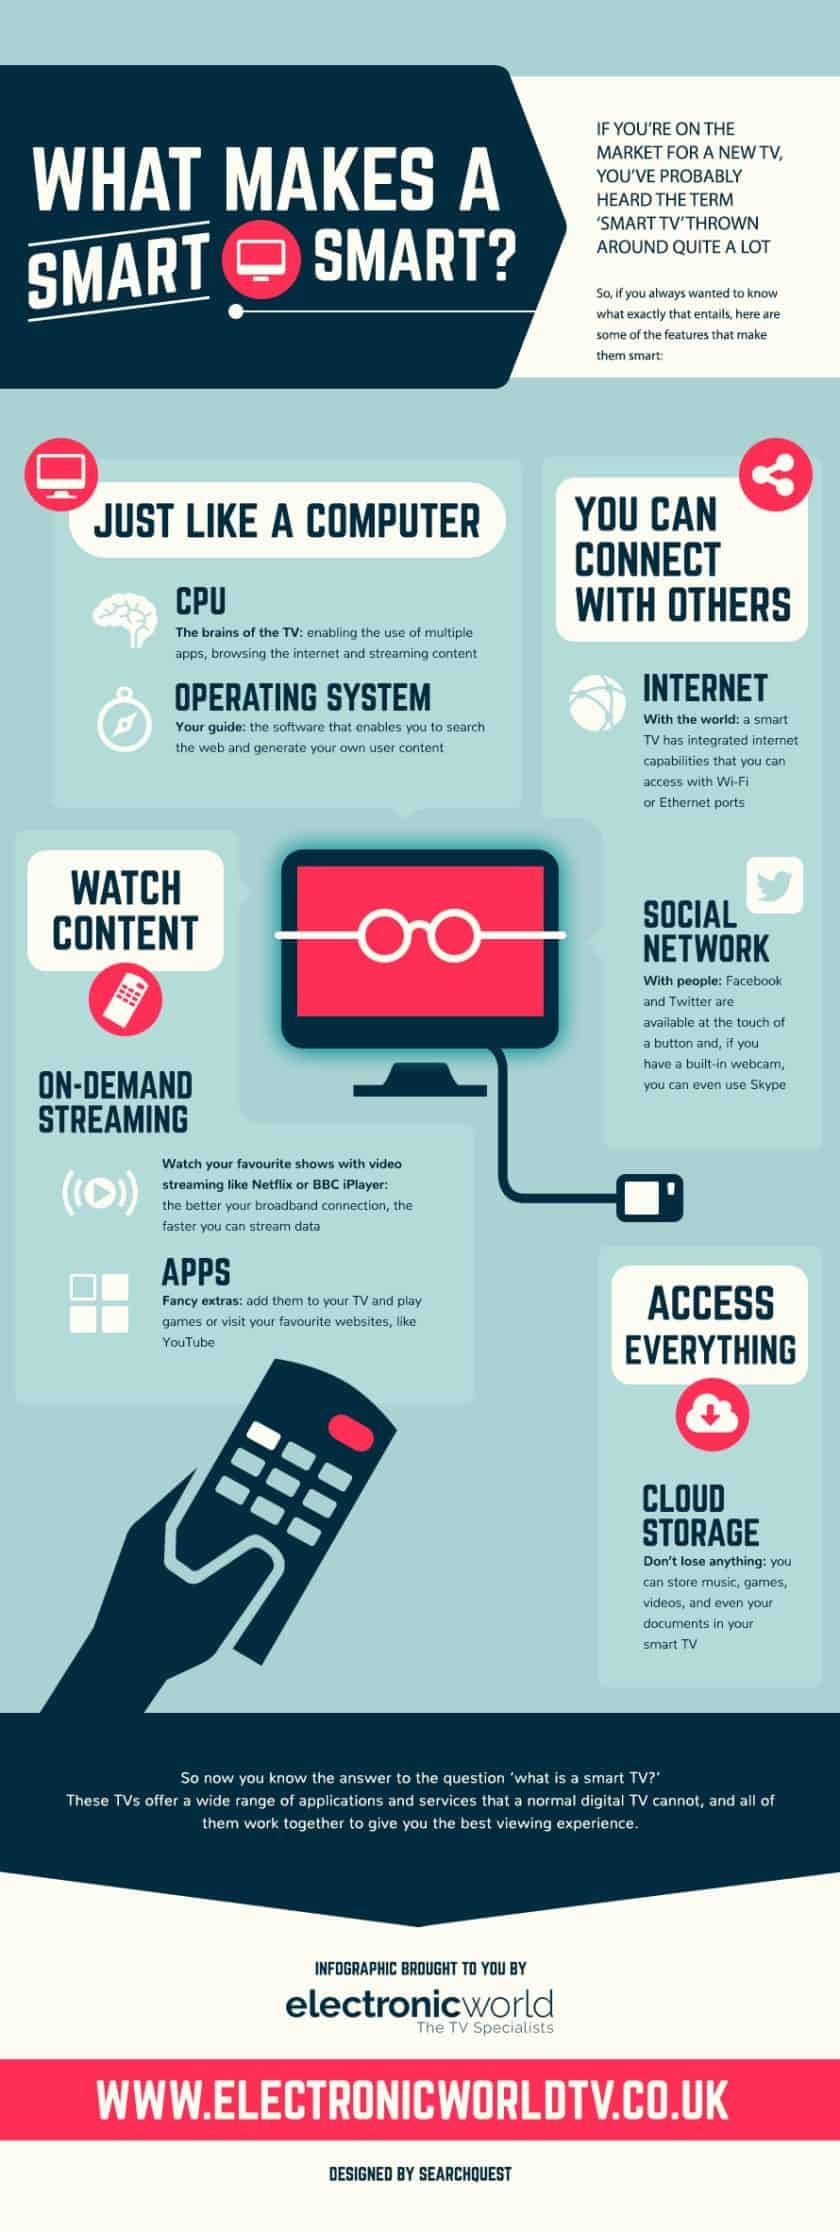 how-to-add-apps-to-a-smart-tv-this-year-infographic